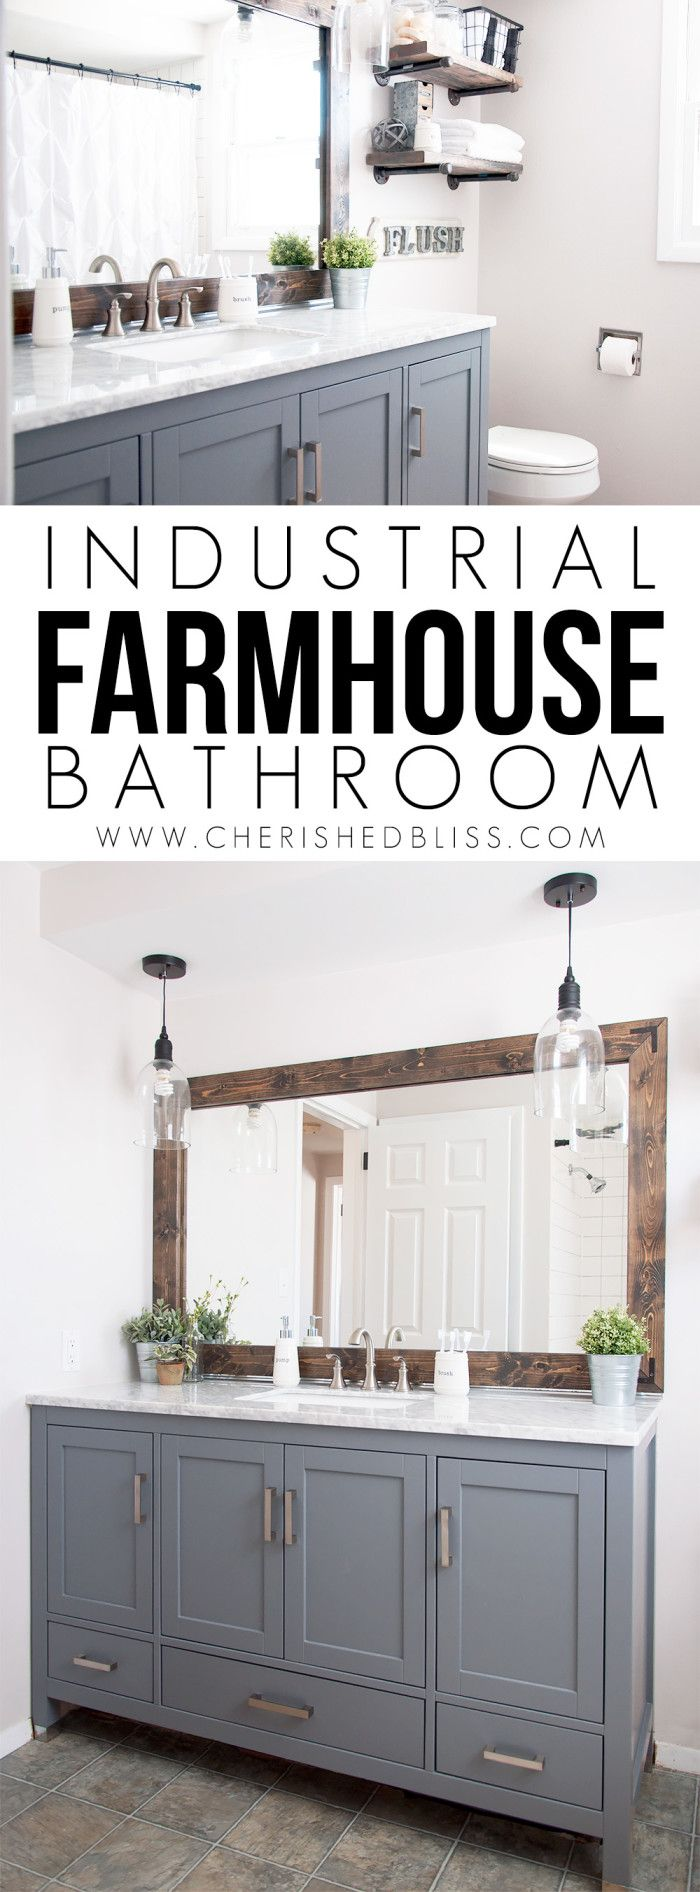 Bathroom Mirrors Farmhouse best 25+ farmhouse medicine cabinets ideas only on pinterest